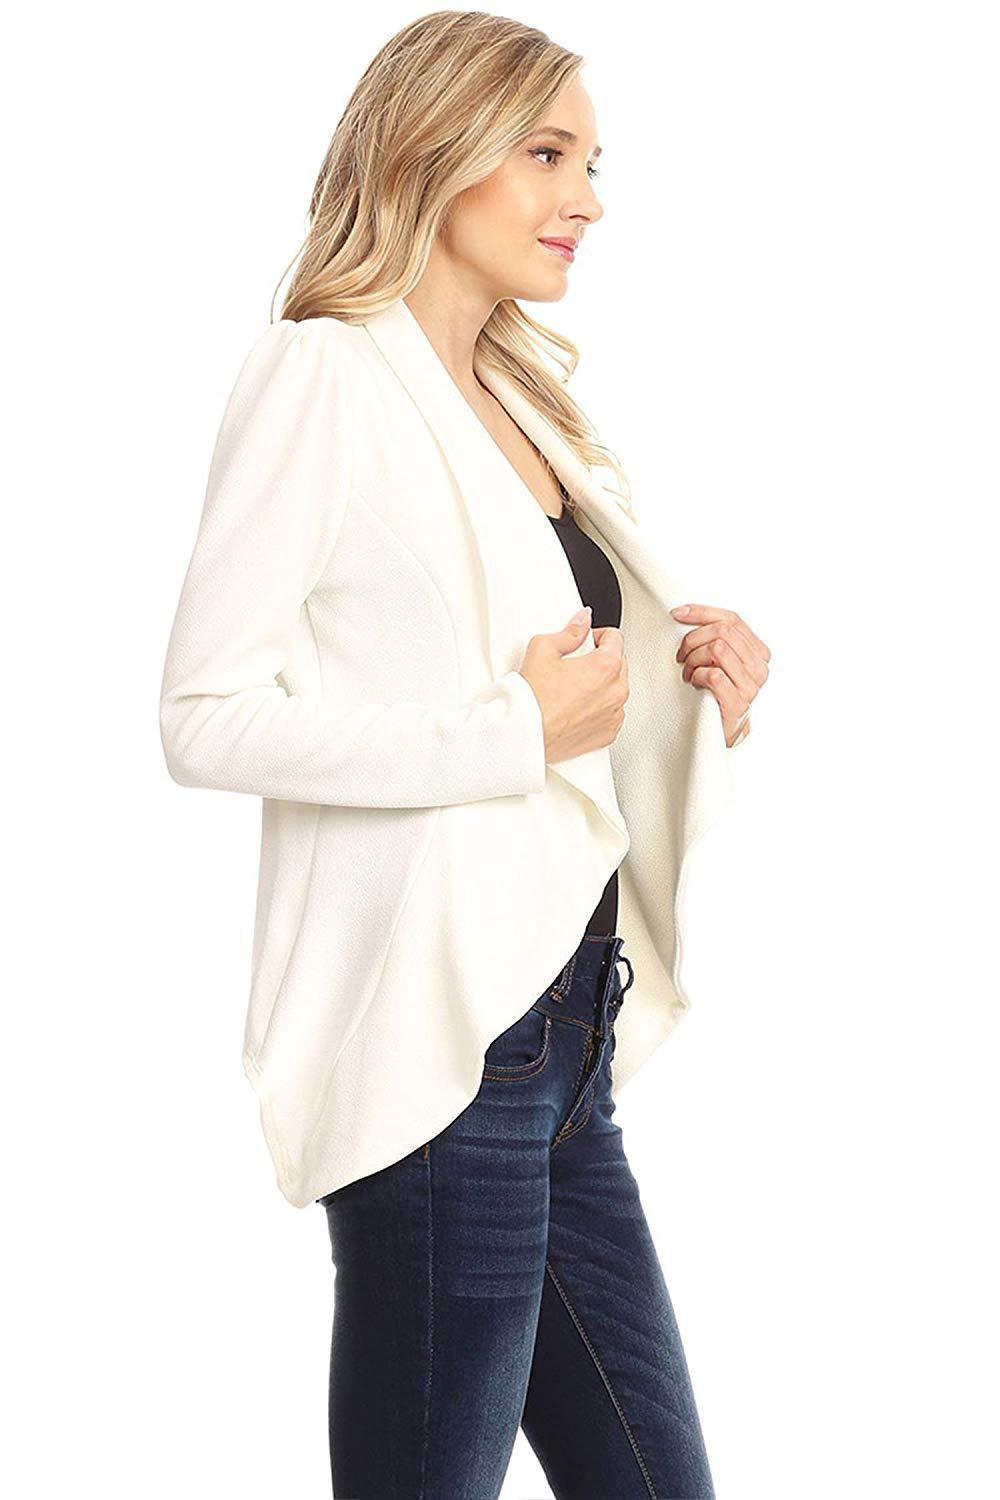 Mr.Nut Fashion Temperament Irregular Small Suit Casual Female Blazer Solid Office Lady Women Blazers And Jackets